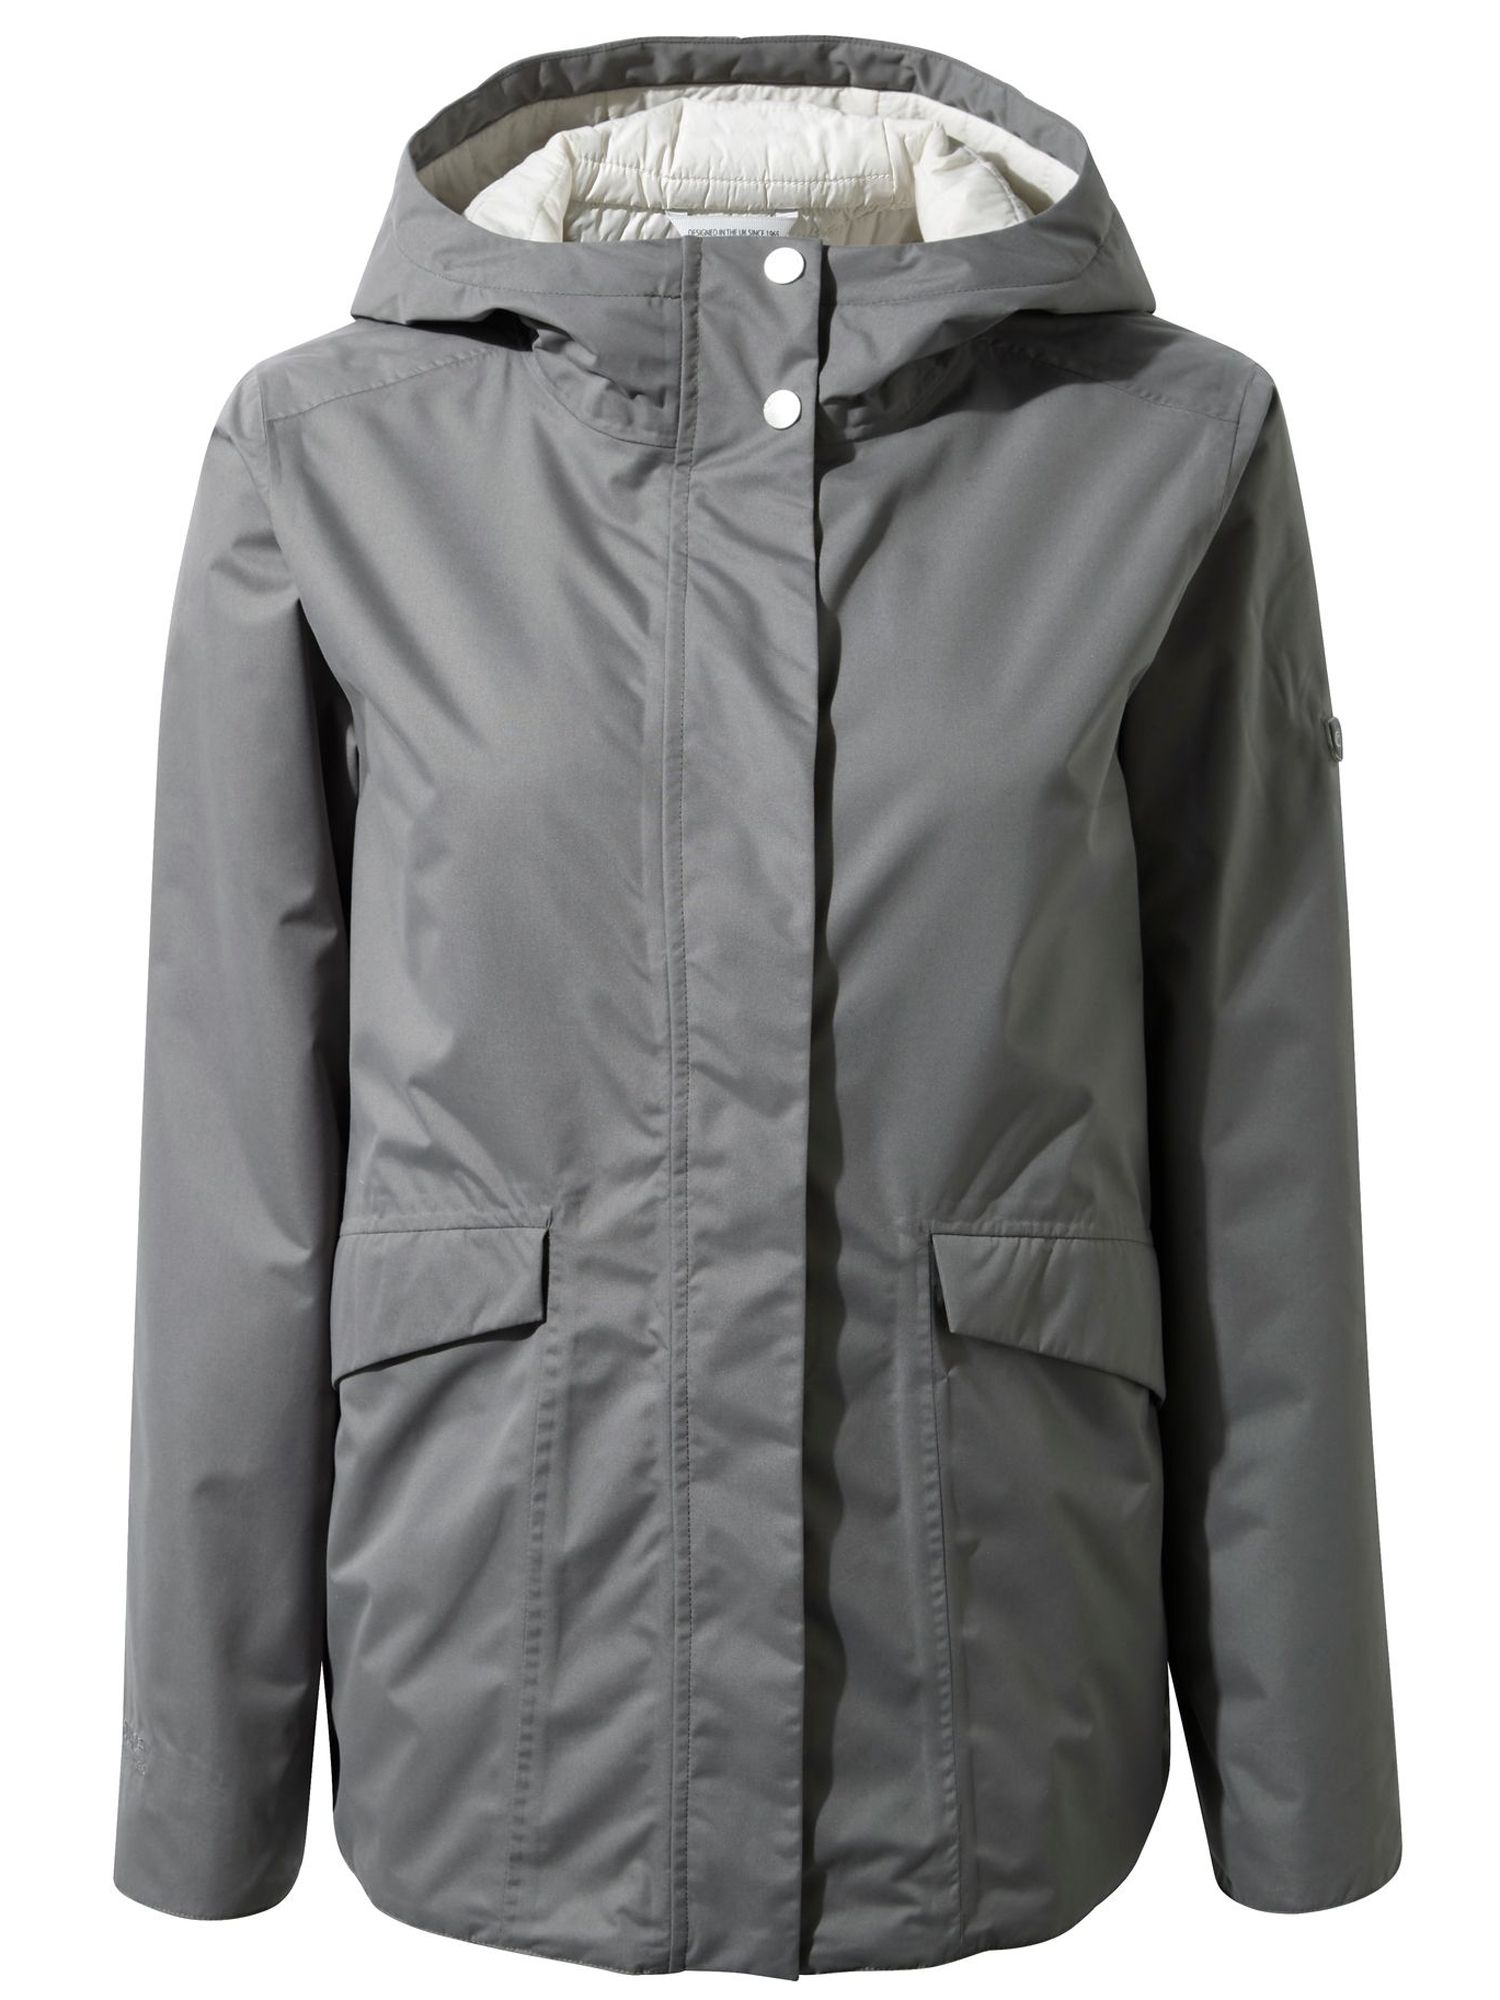 Craghoppers Marla Jacket, Platinum